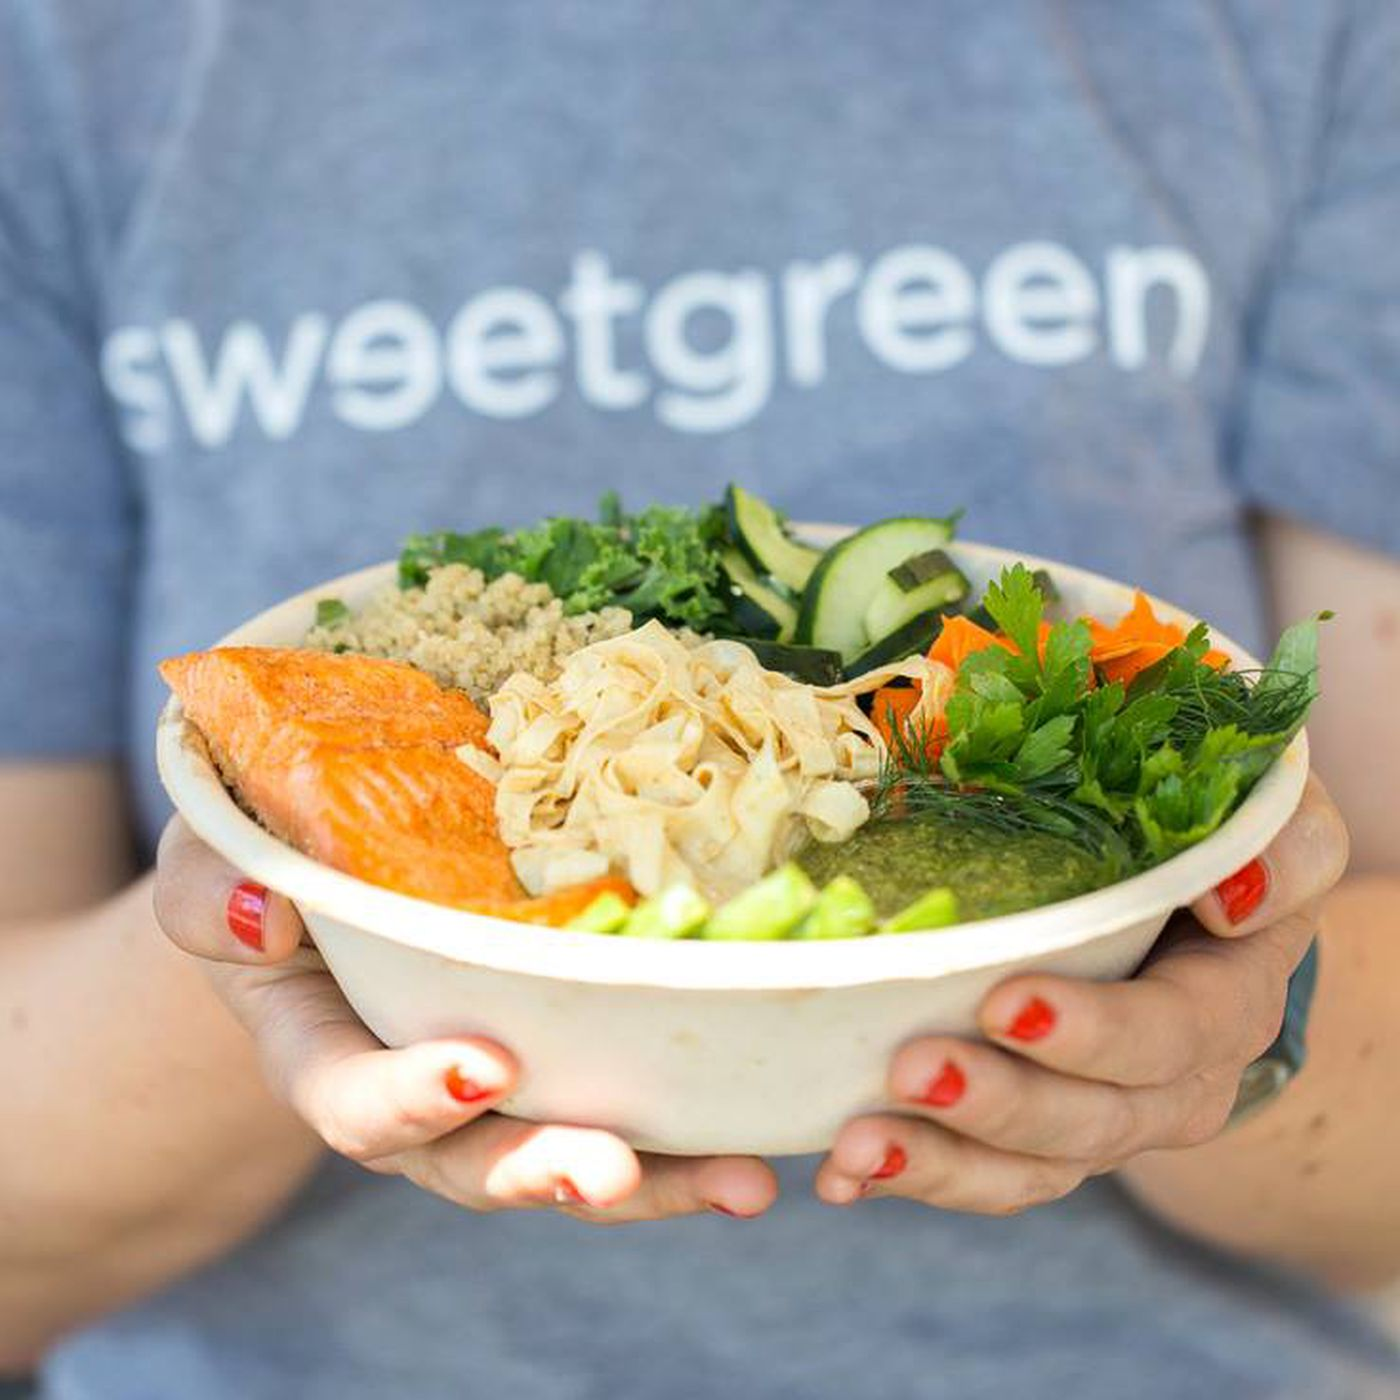 Sweetgreen Hikes Prices to Offset Higher Wages, Better Benefits - Eater